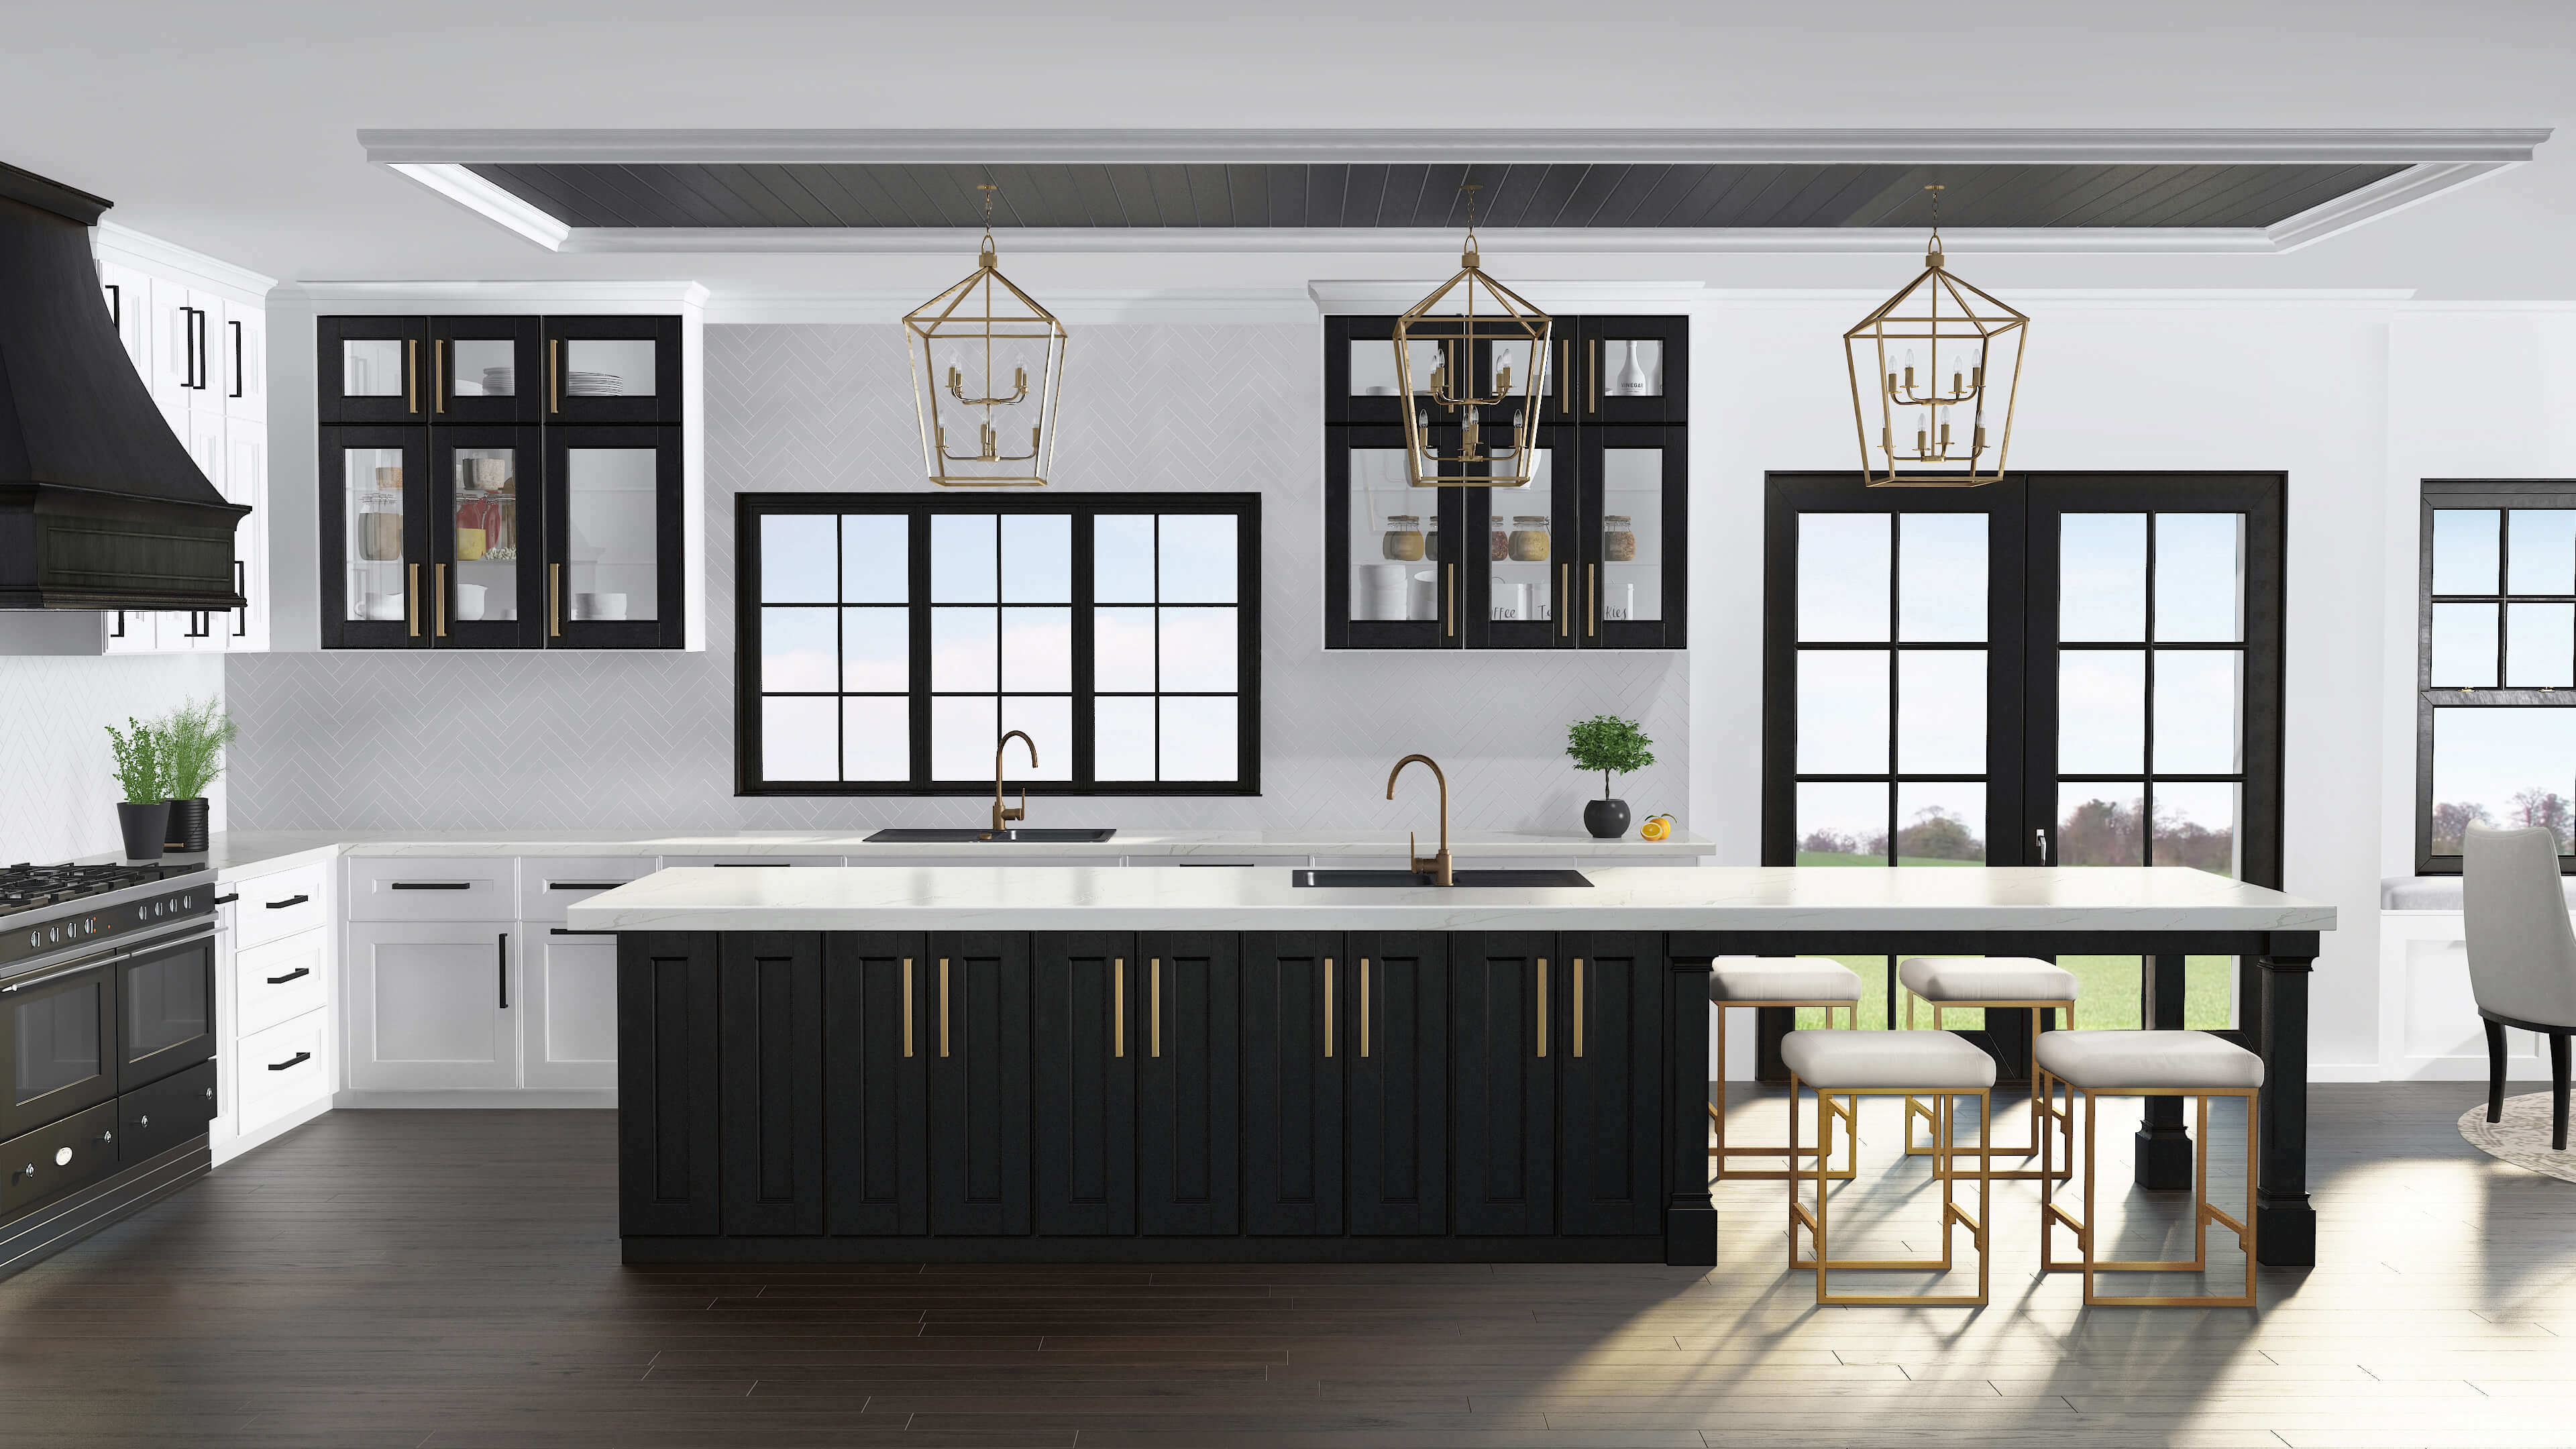 home-interior-in-New-Jersey-2